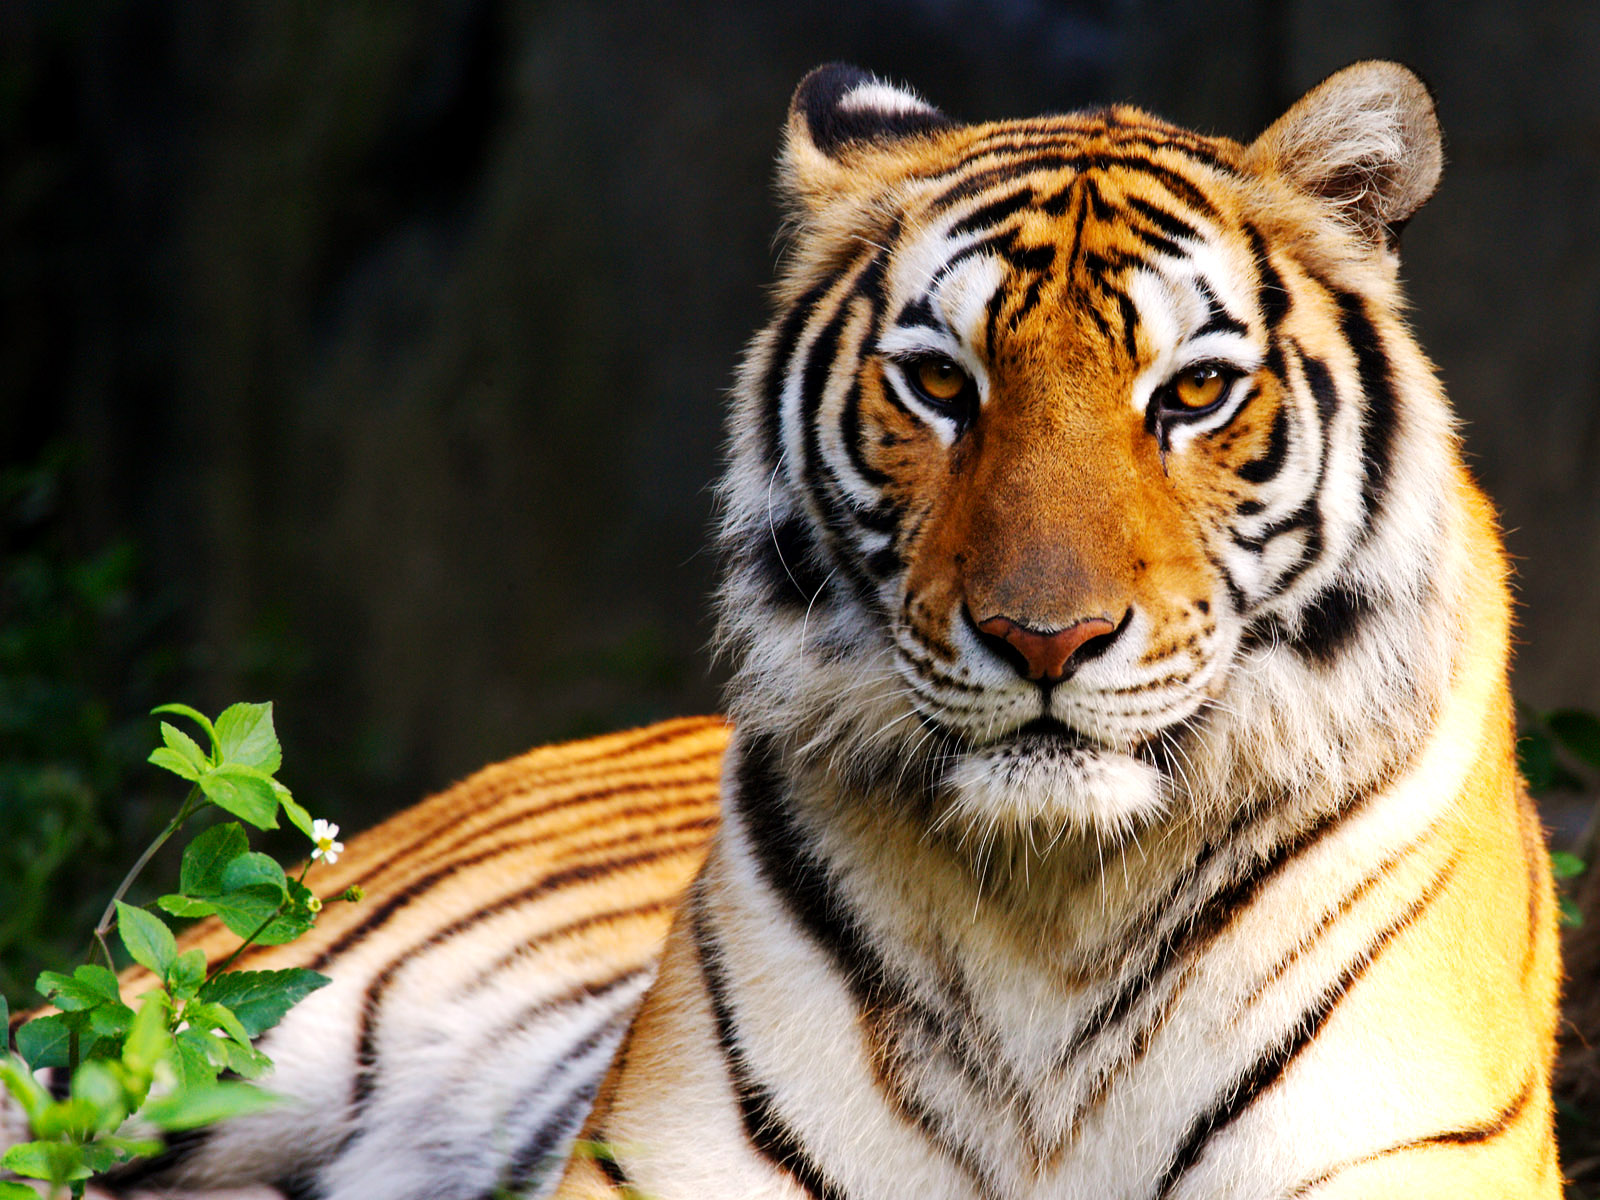 central wallpaper: colors of nature tiger hd wallpapers